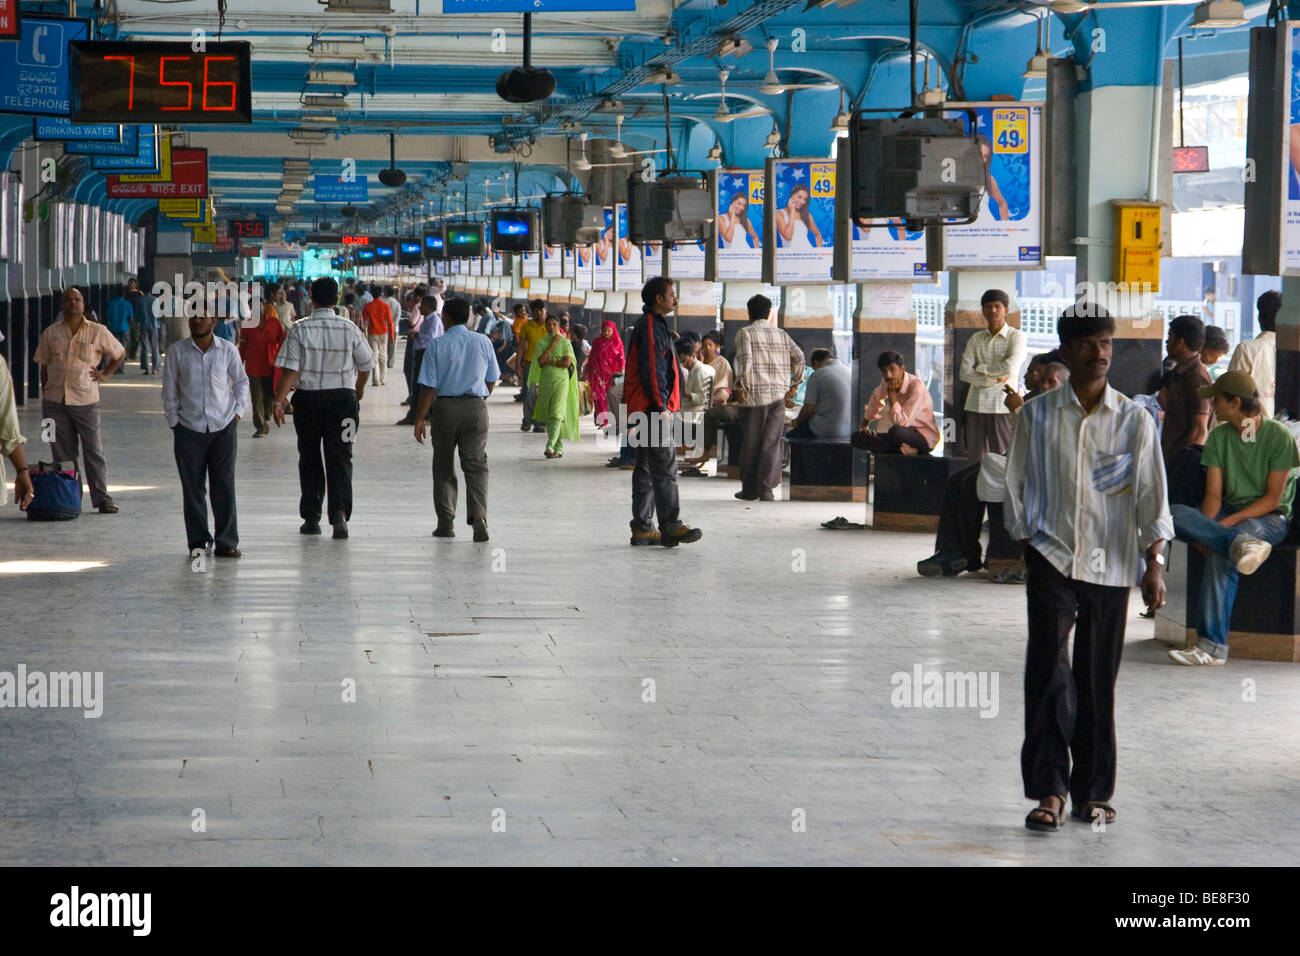 Railway station in Hyderabad India - Stock Image